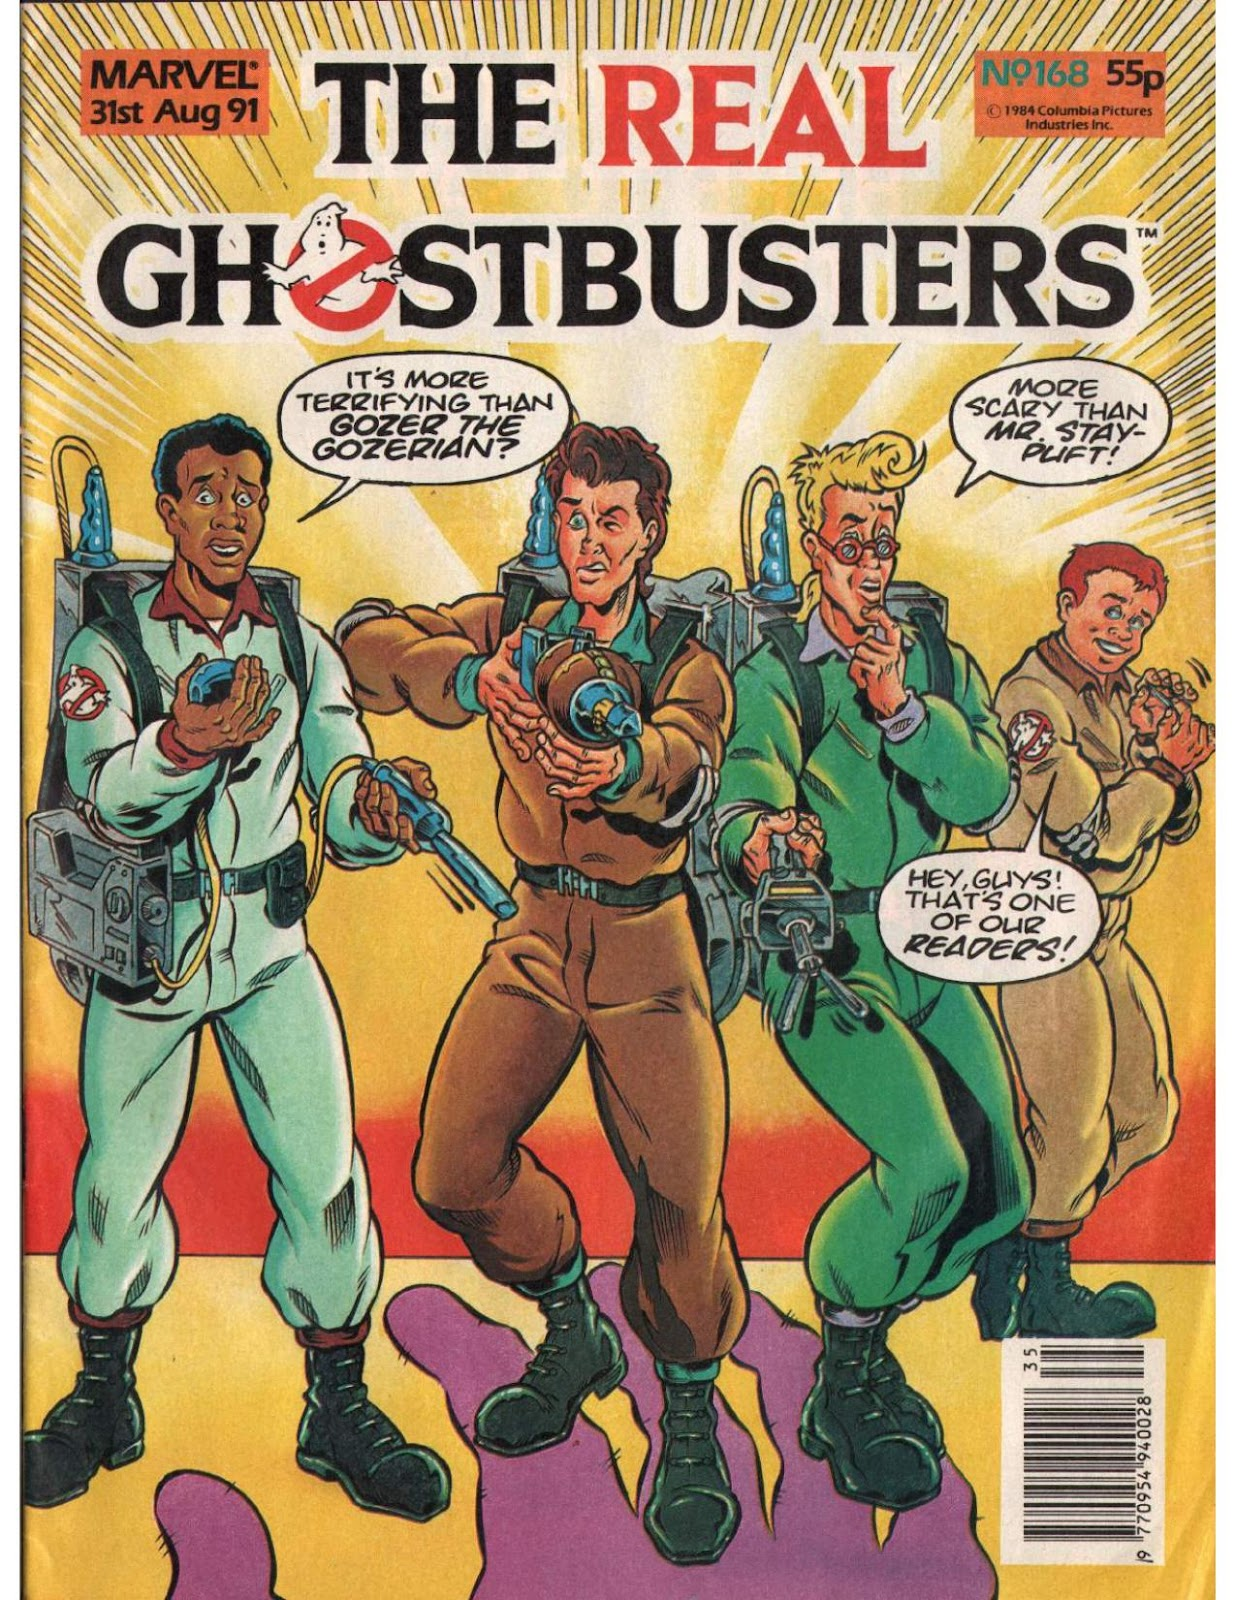 The Real Ghostbusters 168 Page 1